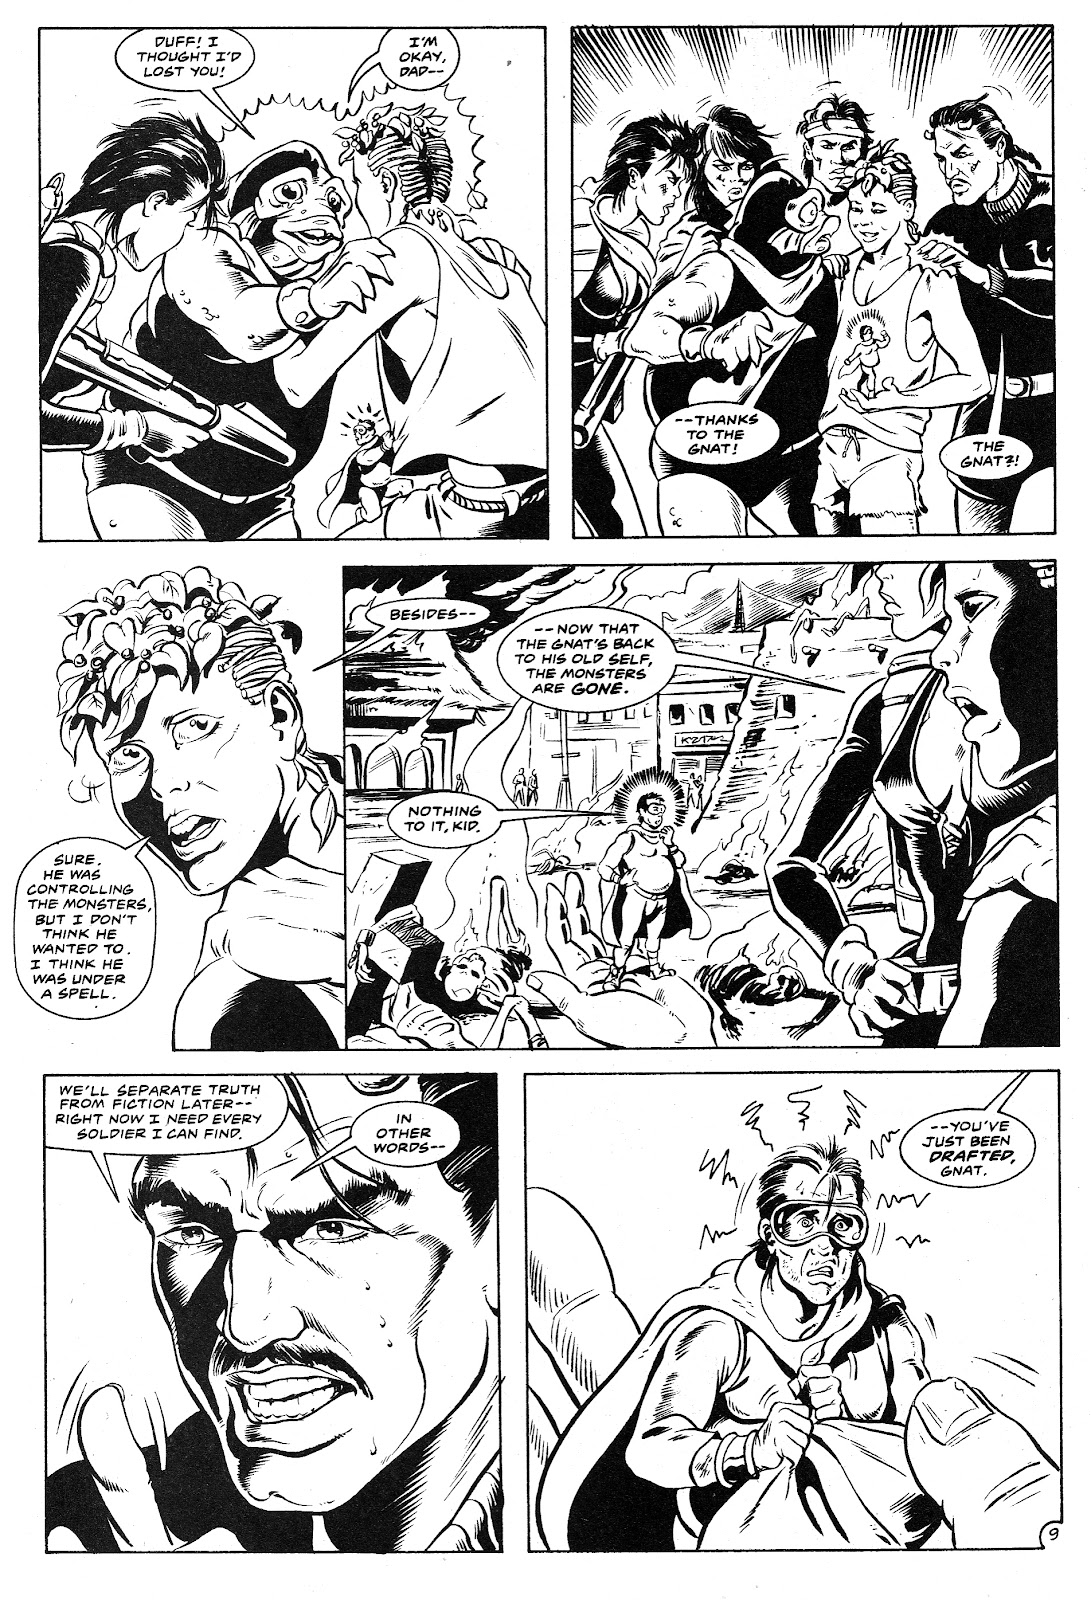 Ex-Mutants: The Shattered Earth Chronicles issue 9 - Page 11